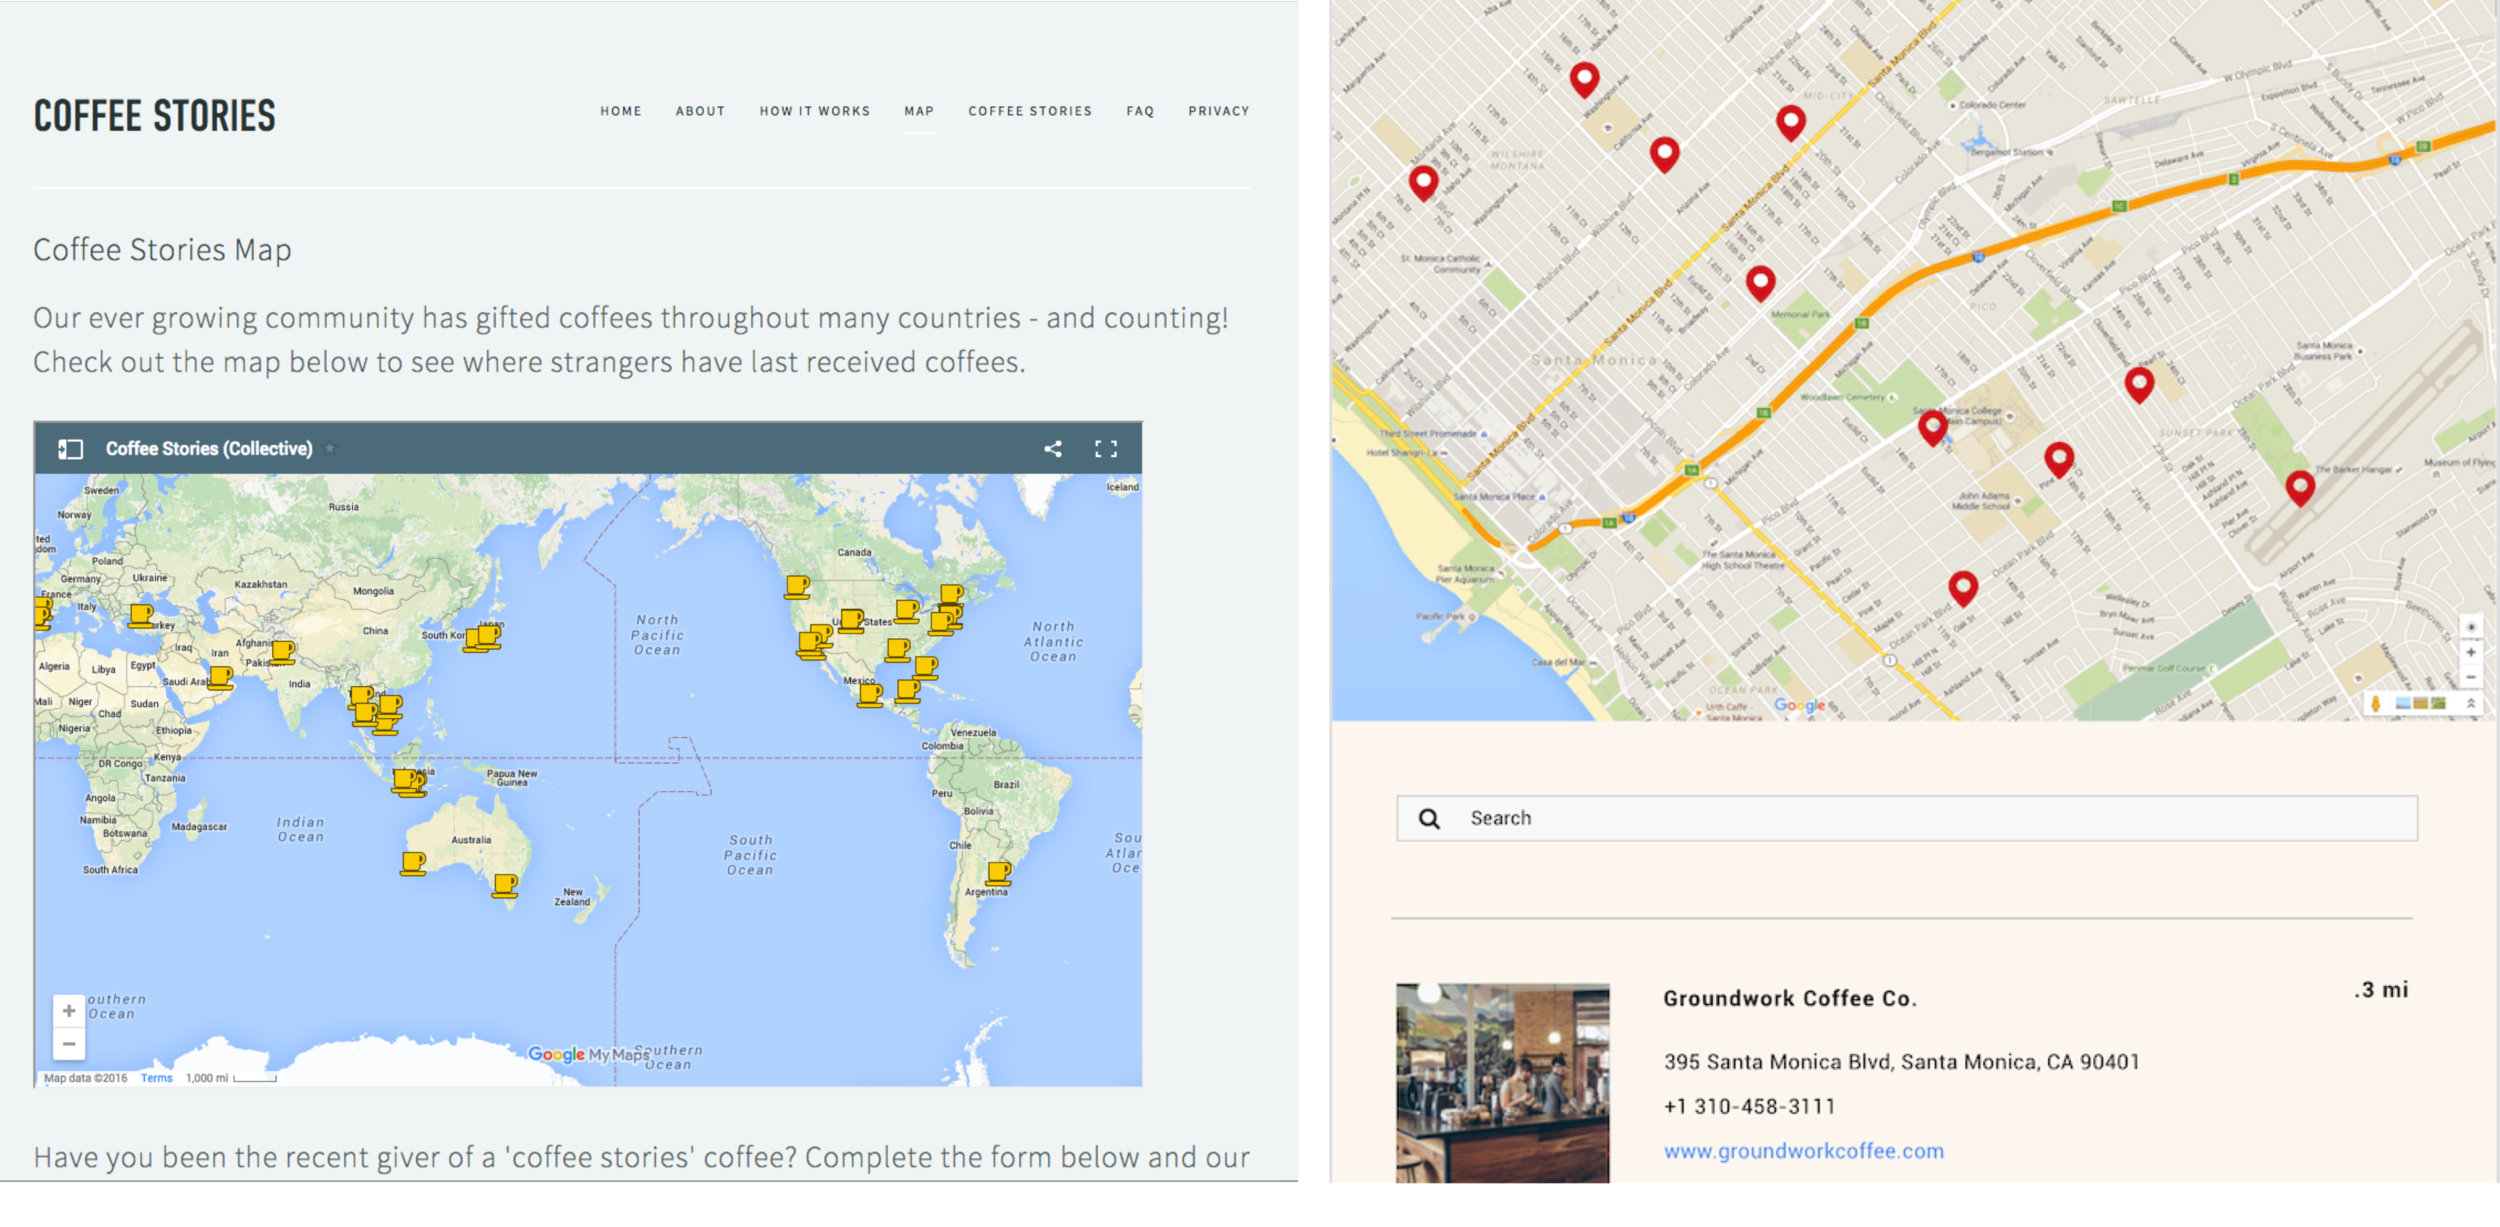 We developed an easy way for users to find a participating location